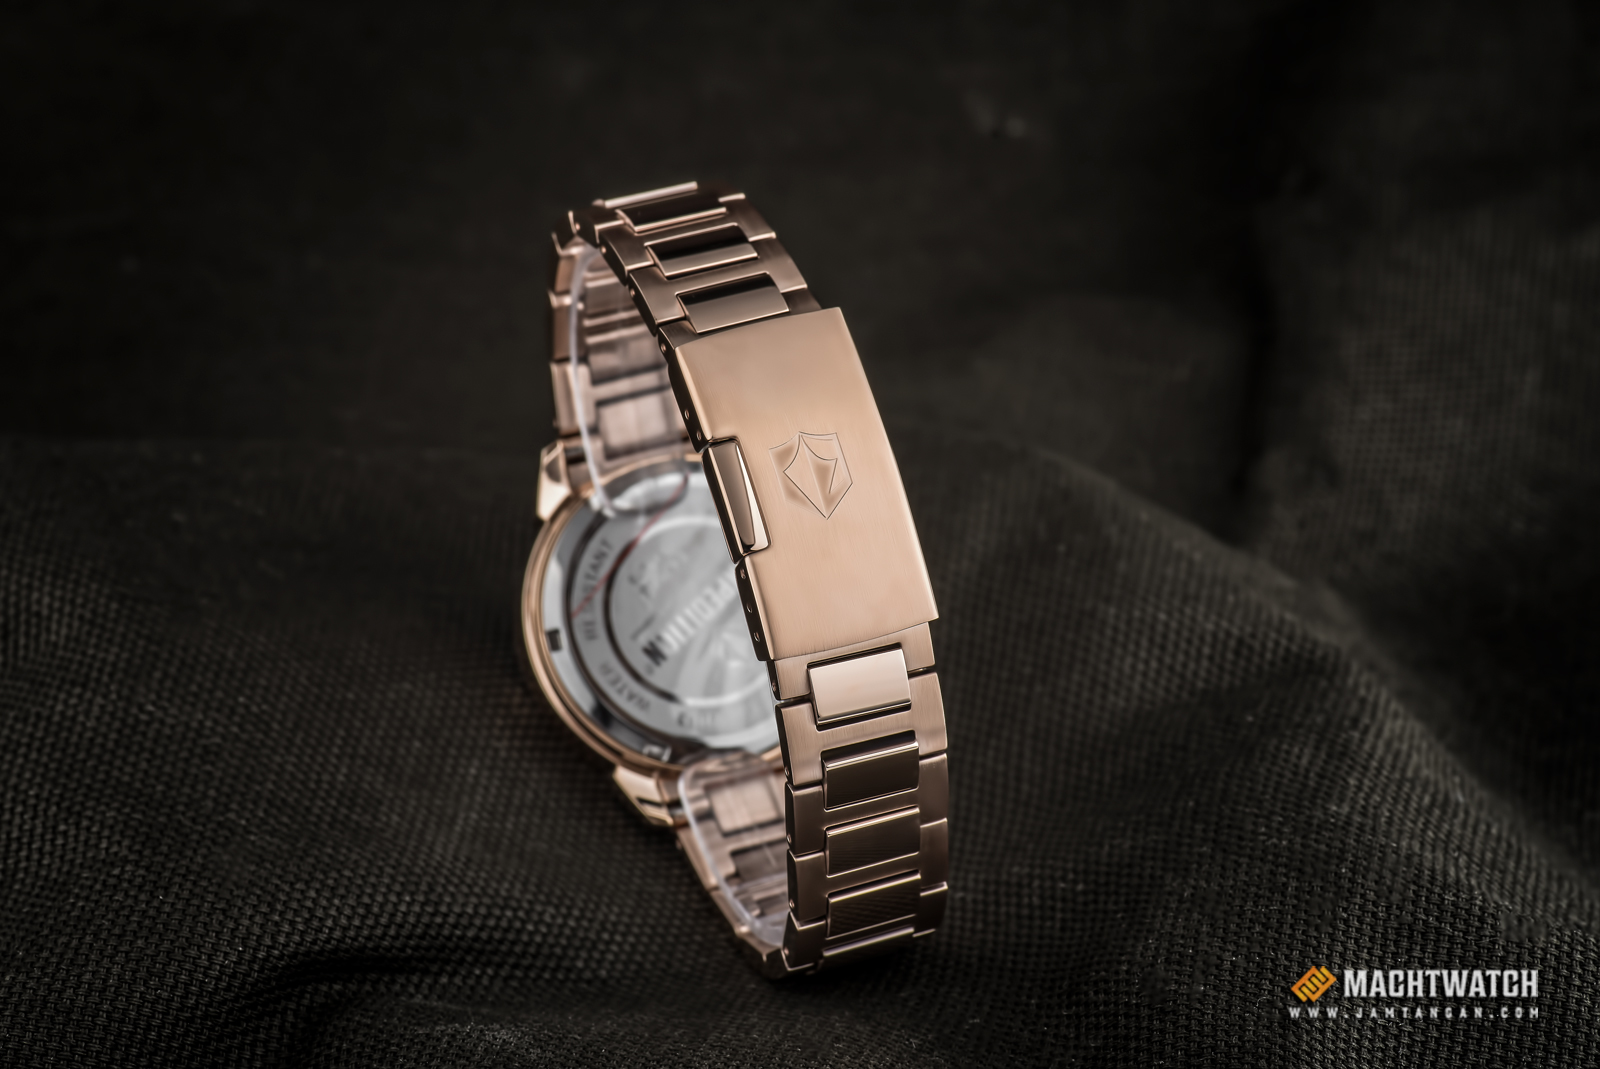 Expedition E 6758 BF BRGSL Ladies White Dial Rose Gold Stainless Steel Strap Machtwatch